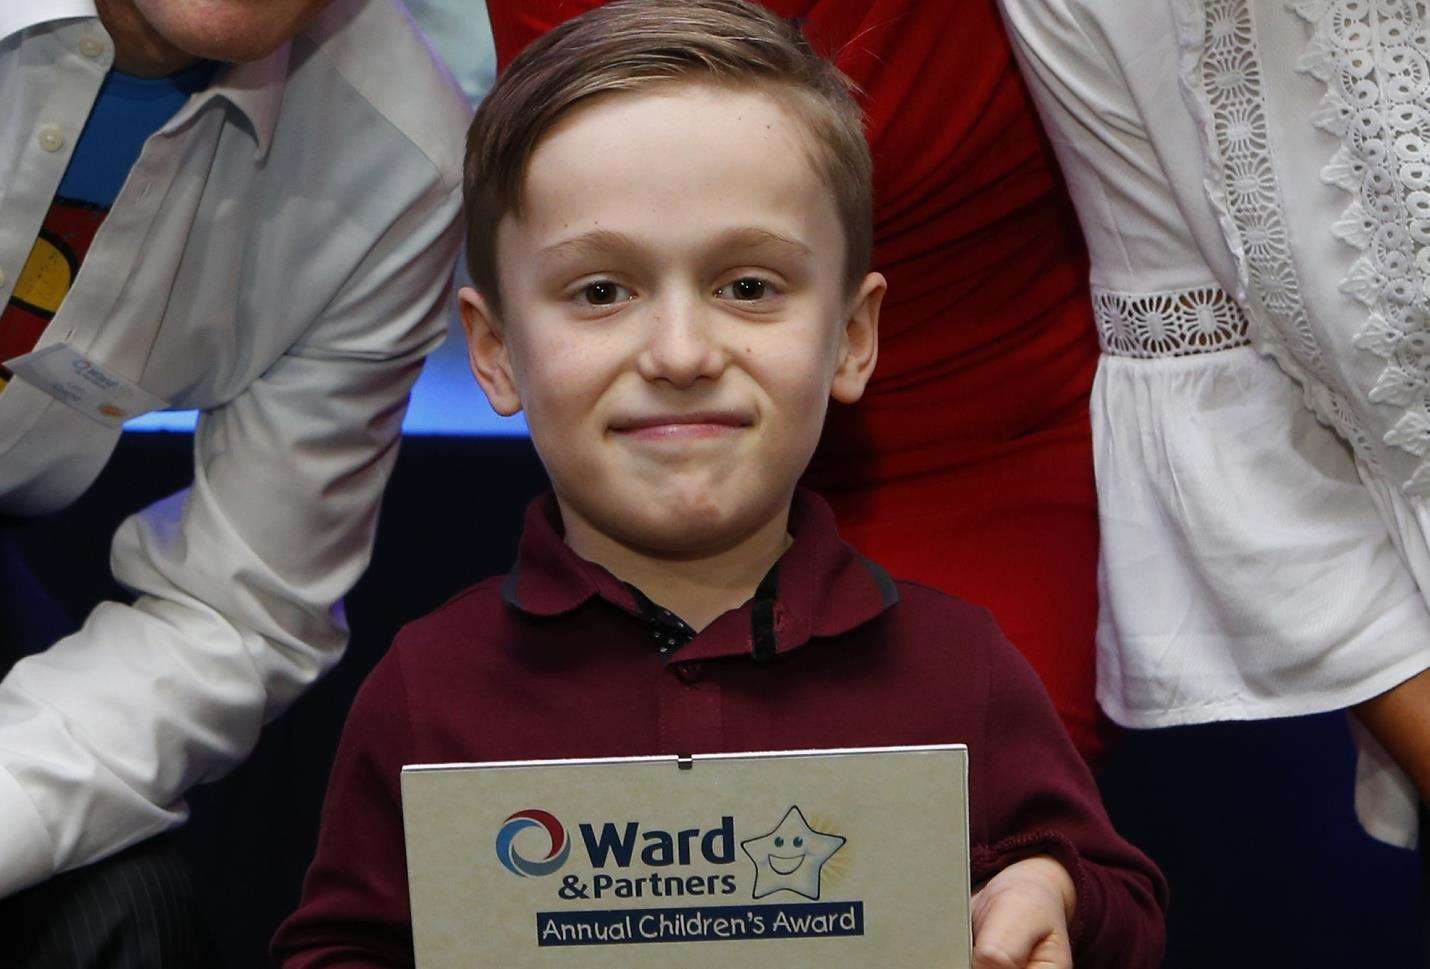 Ward and Partners Annual Children's Awards. Triumph Over Adversity for children aged 6-16 years old. Pictured is Harrison Guinan. Picture: Andy Jones